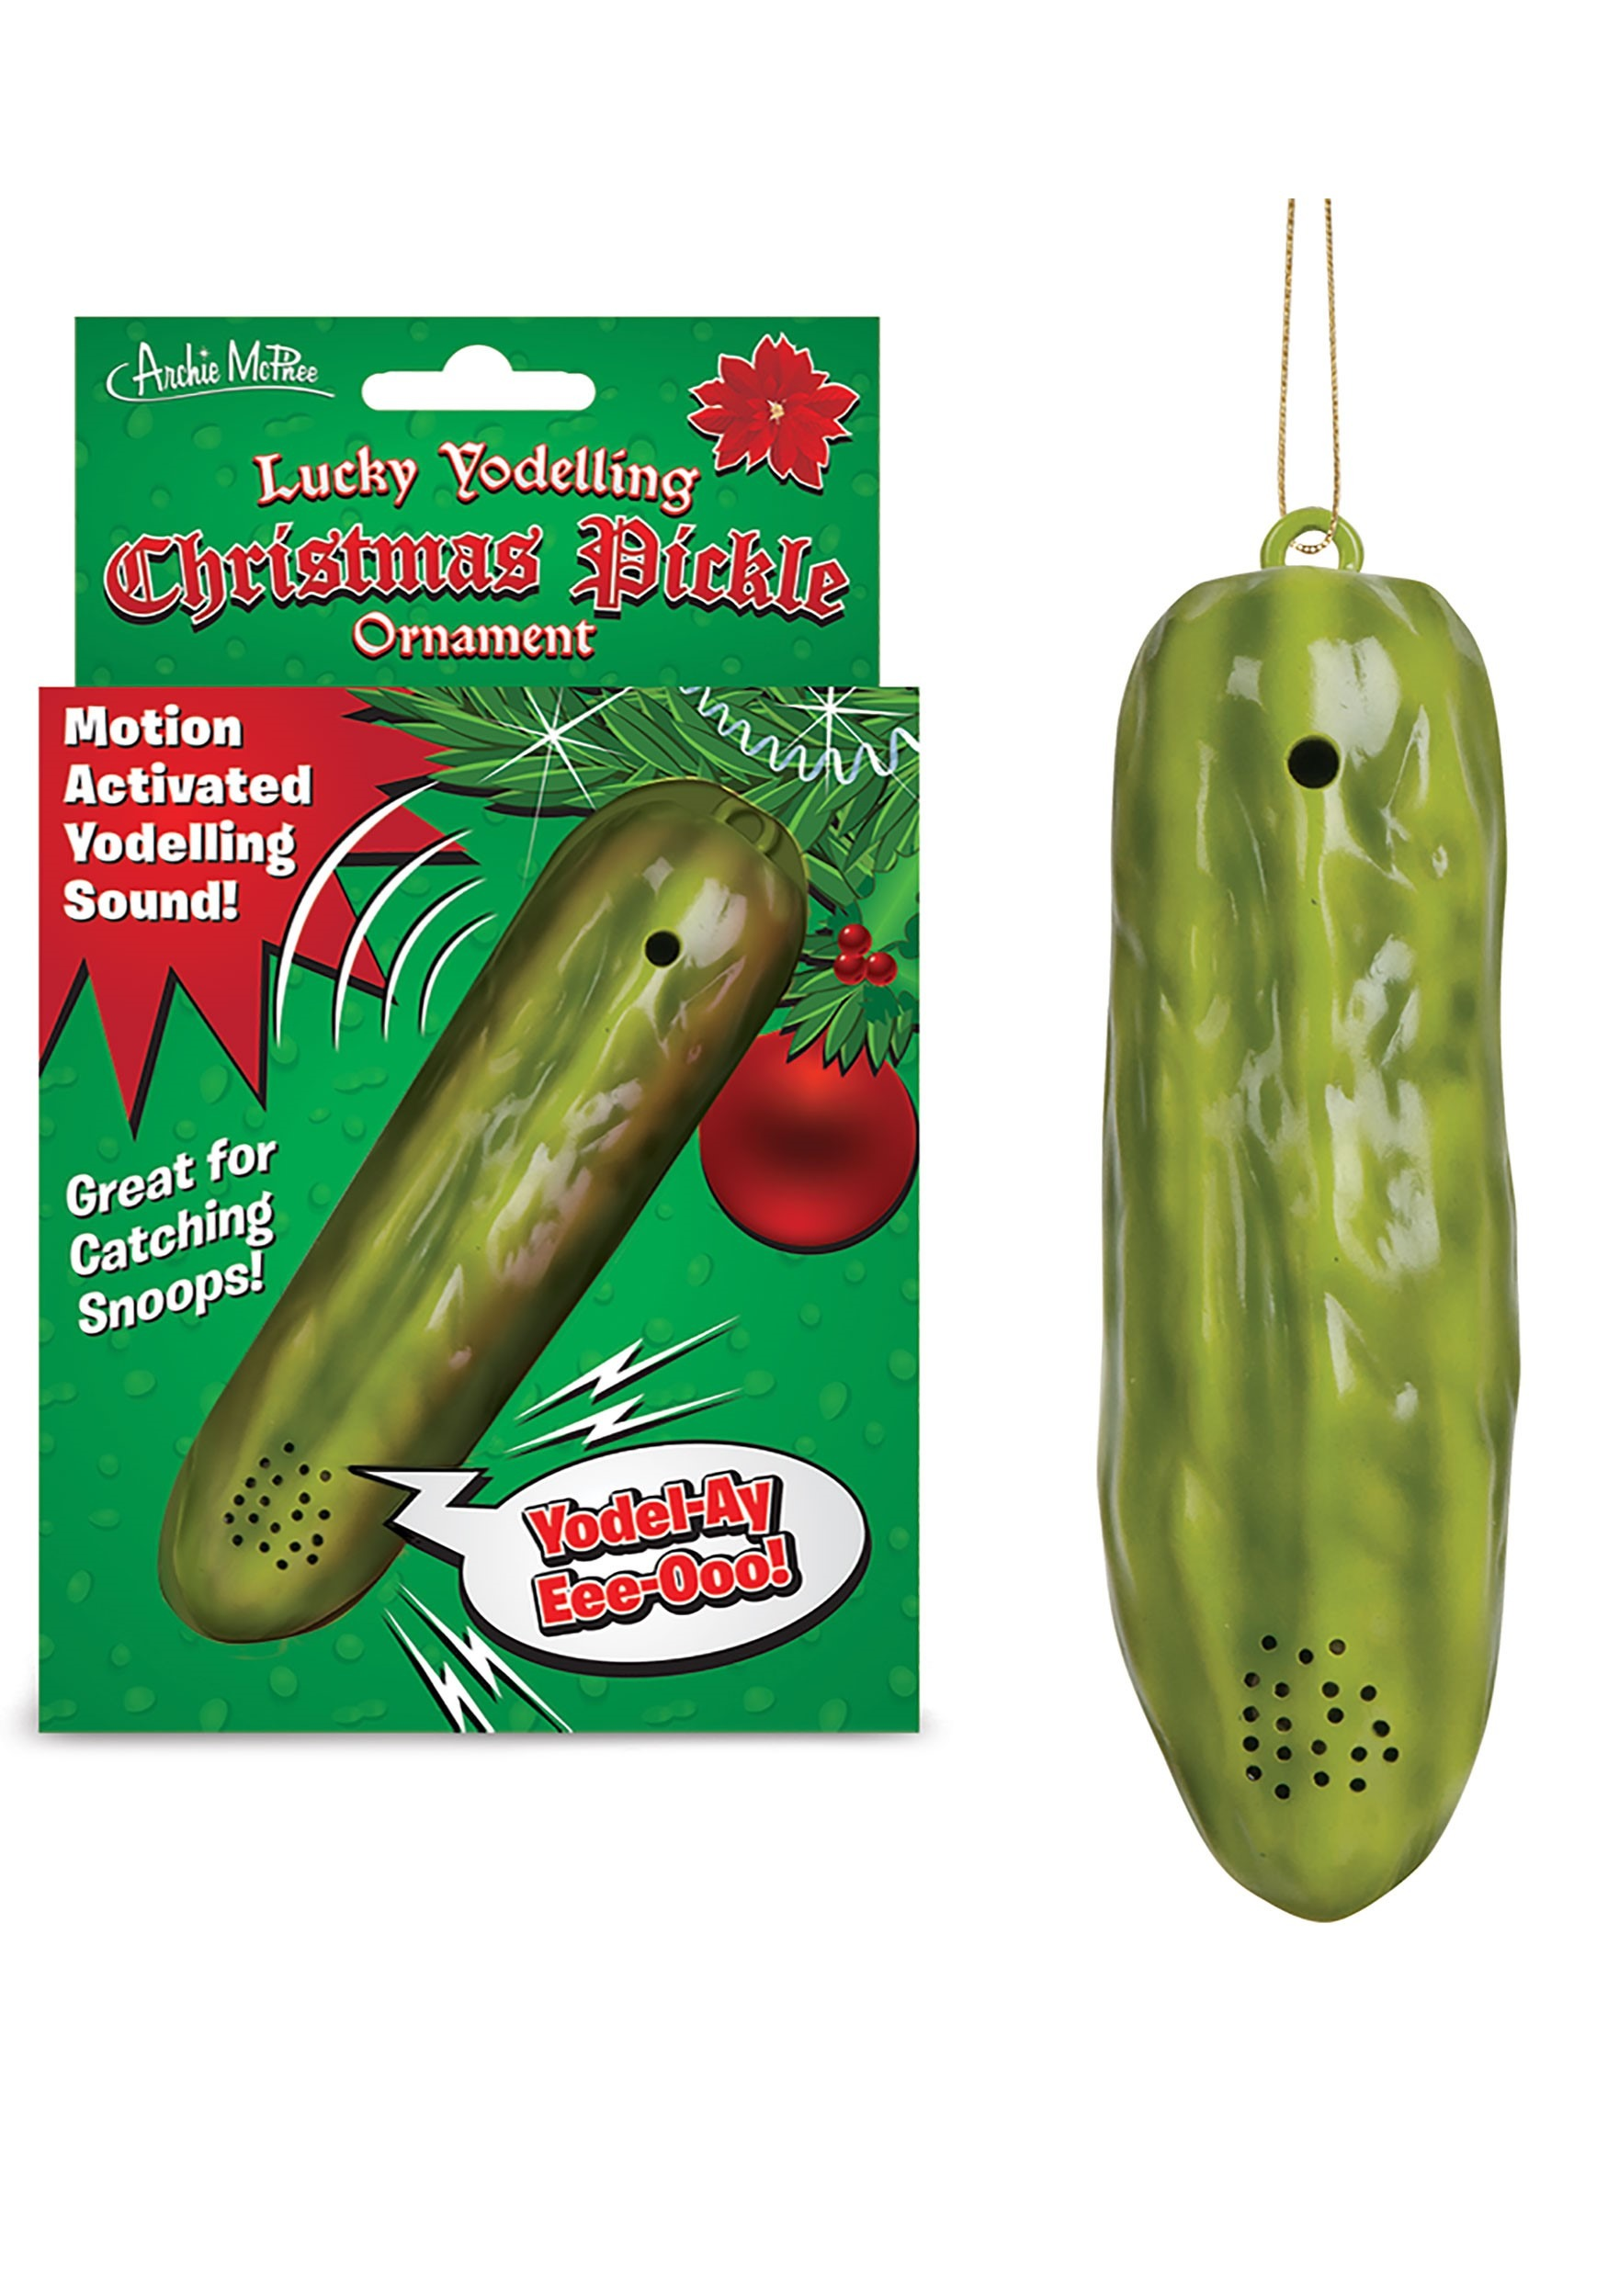 Lucky Yodelling Christmas Pickle Ornament